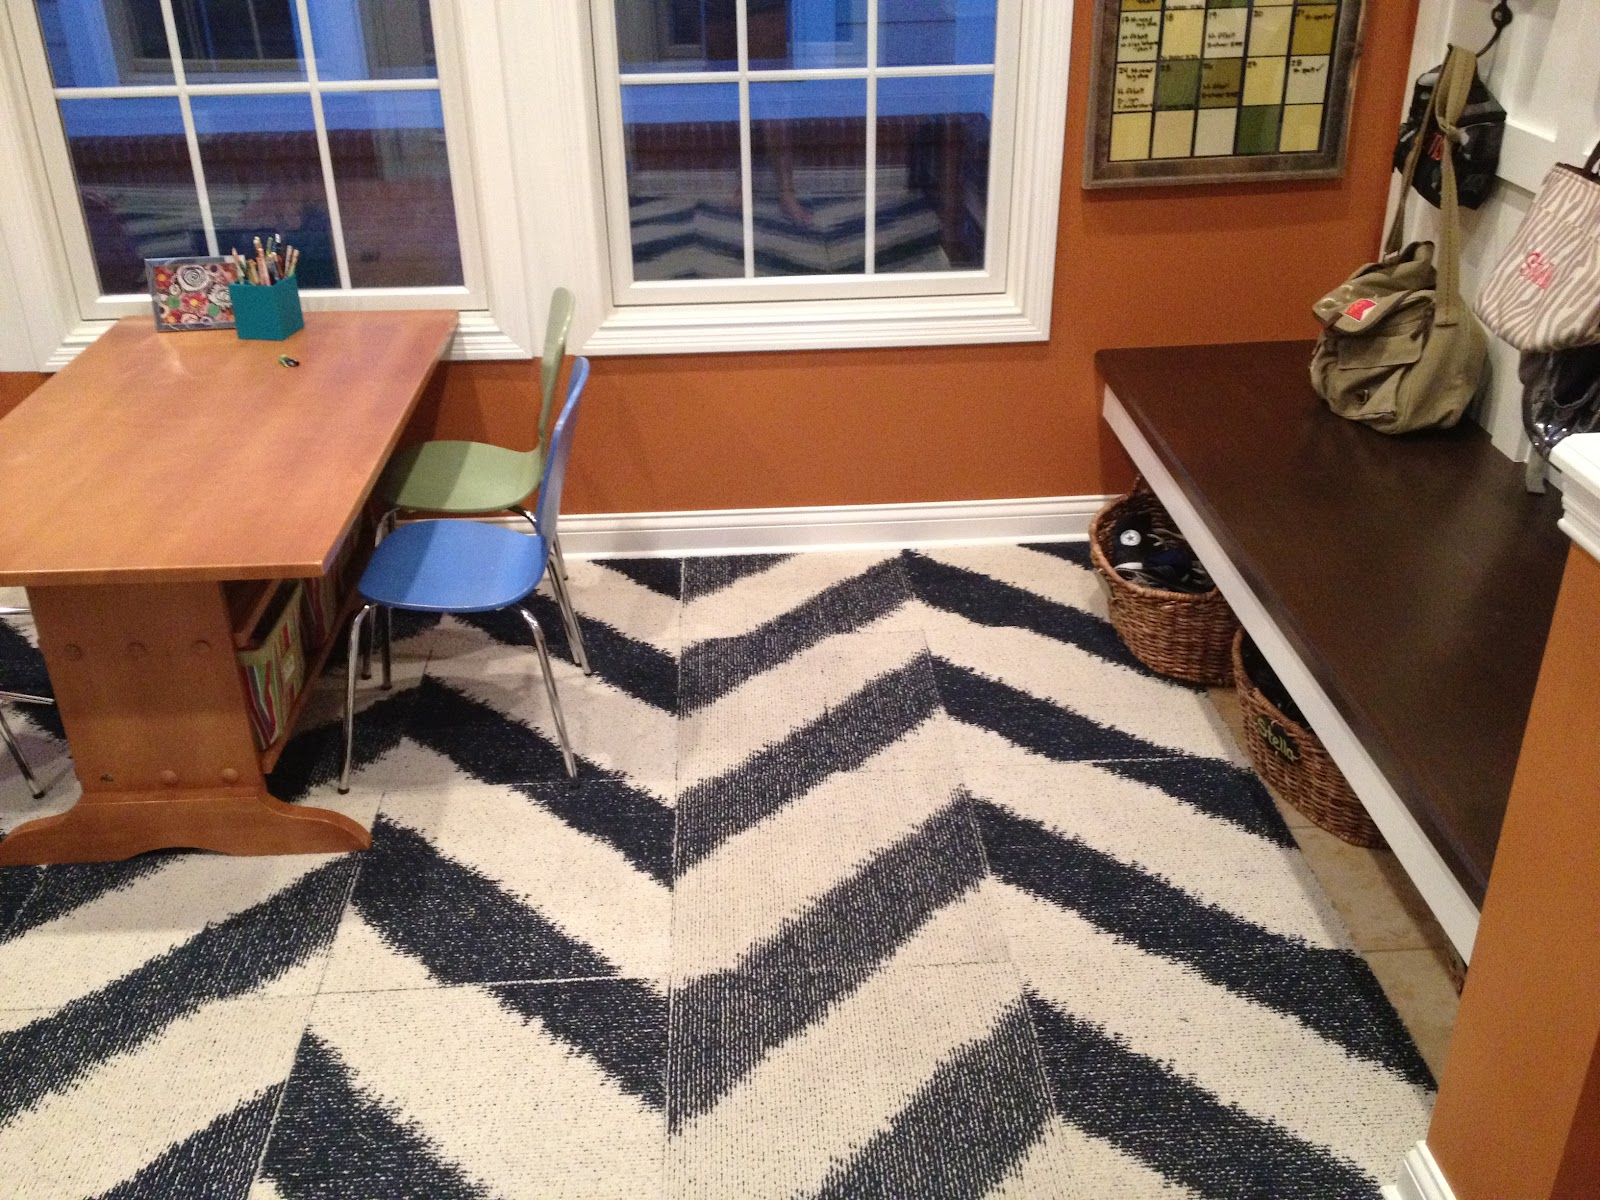 House envy no floor as cool as flor these navy and white chevron tiles are in my house covering up some ugly tile in our sun room turned mudroomhomework area this used to be our toy room and dailygadgetfo Images